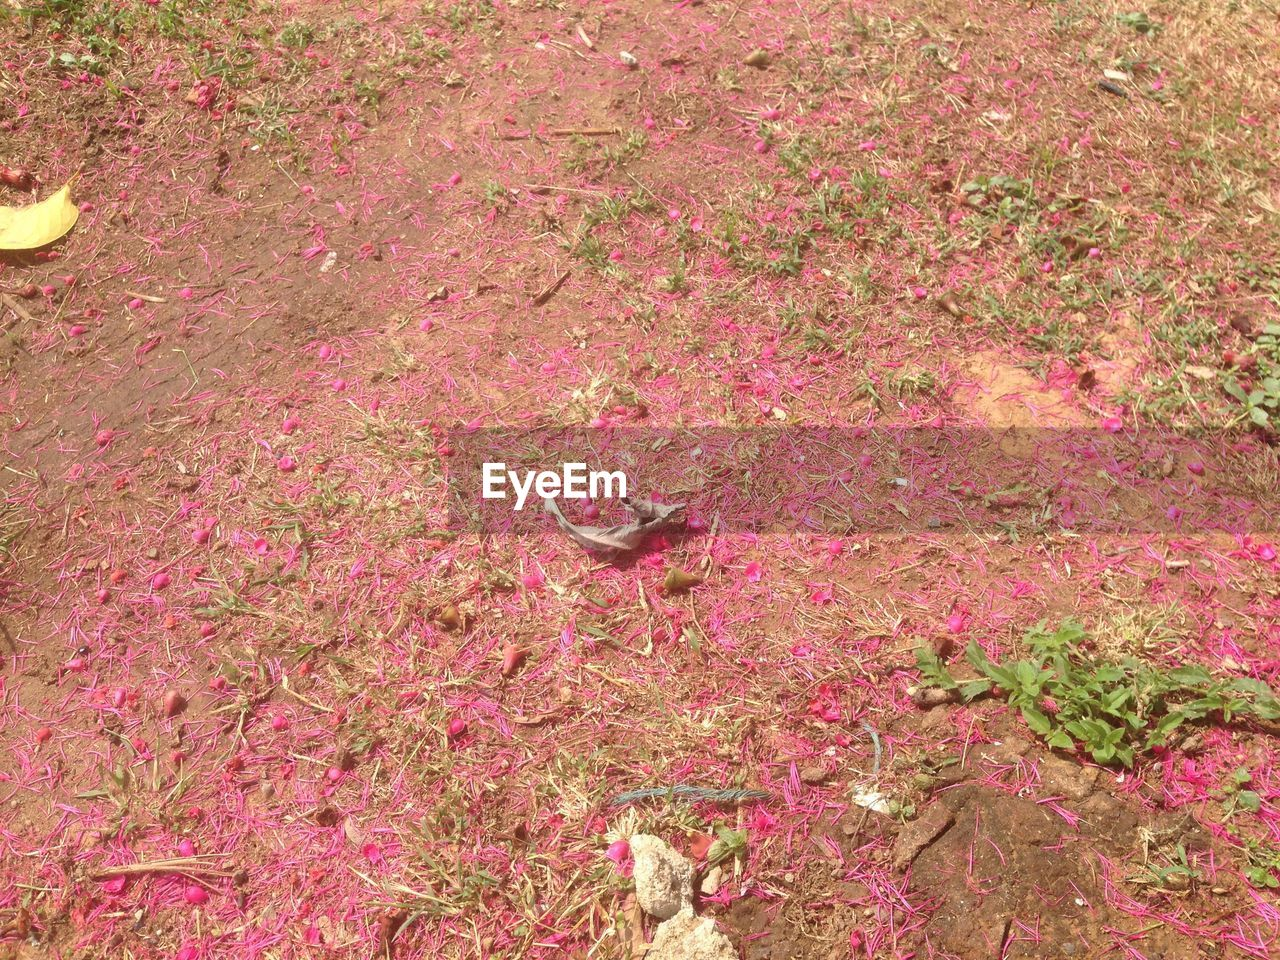 pink color, high angle view, plant, no people, animal, nature, day, animal themes, vertebrate, leaf, outdoors, full frame, plant part, beauty in nature, land, animal wildlife, one animal, field, animals in the wild, growth